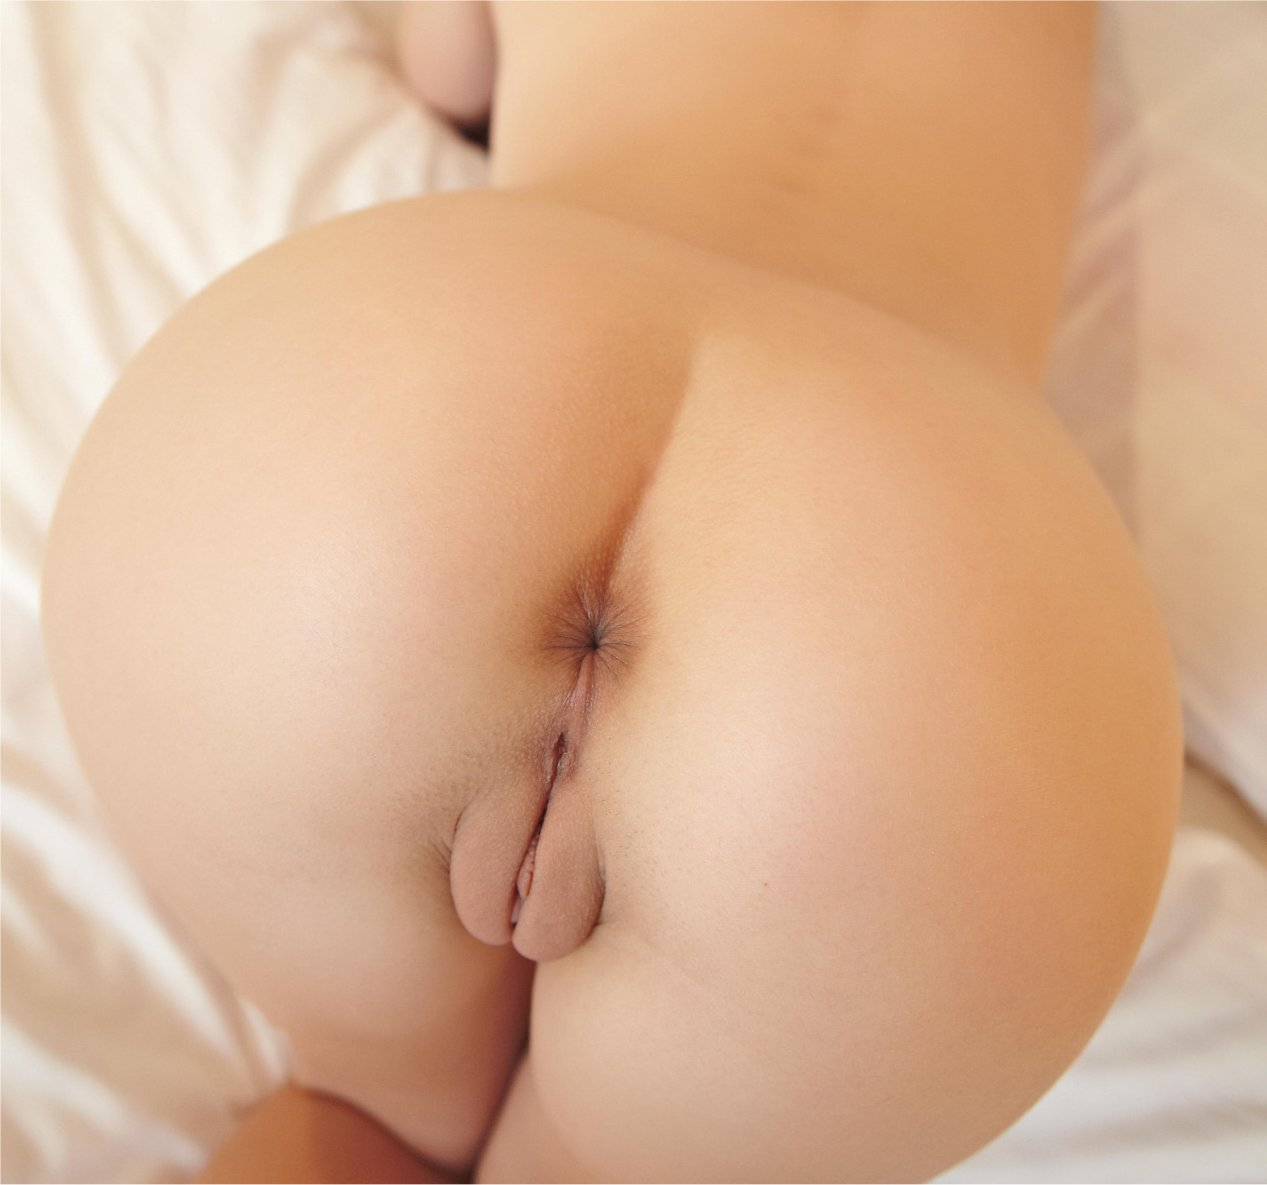 Big Round Perfect Ass